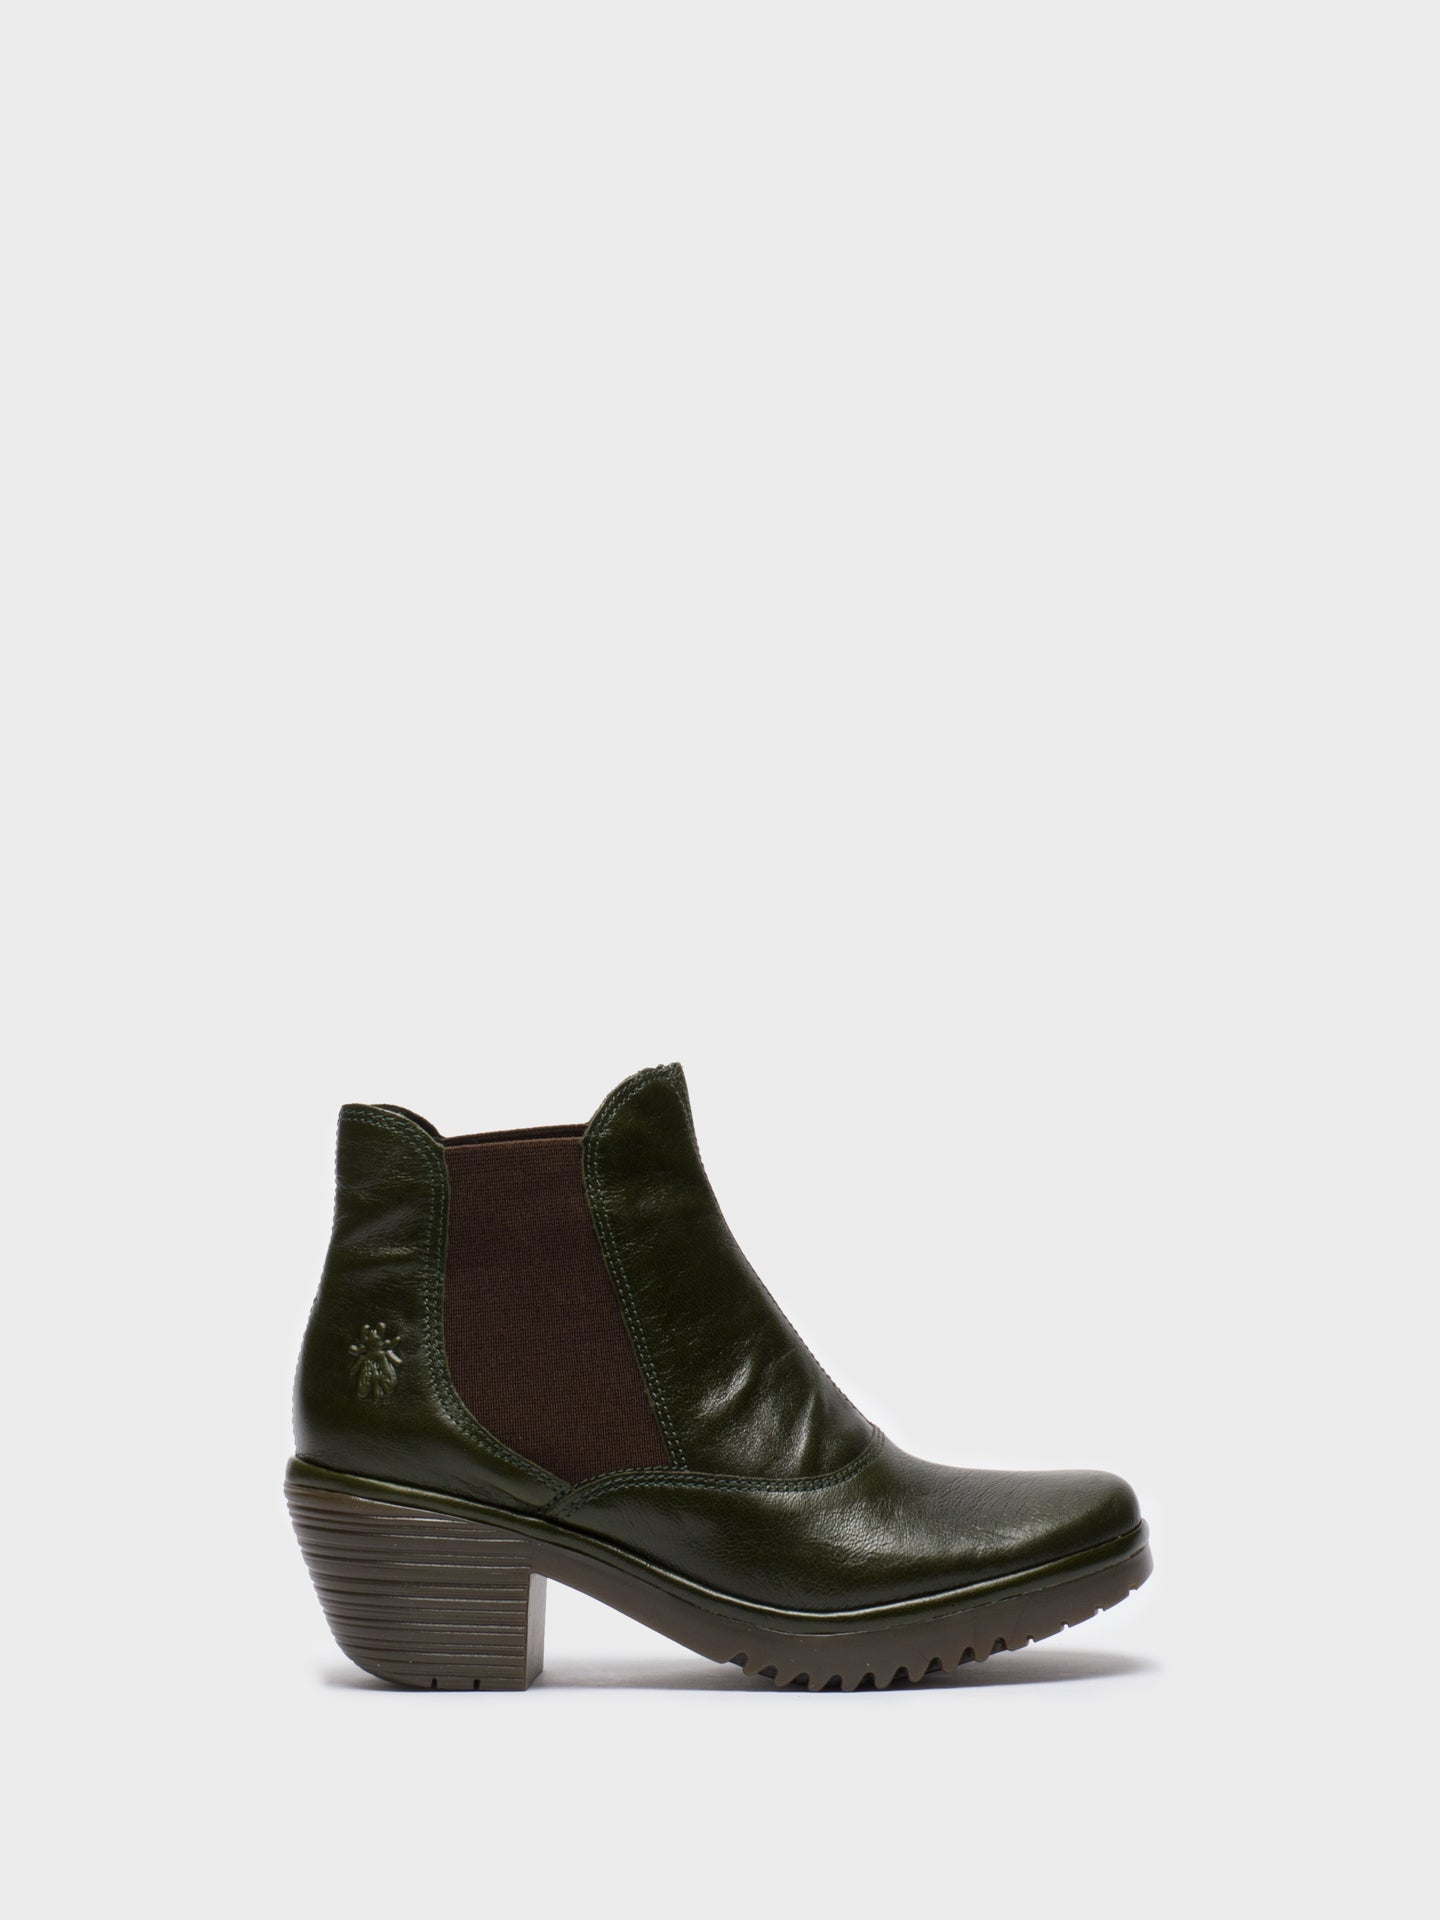 Fly London Botins Chelsea em Verde